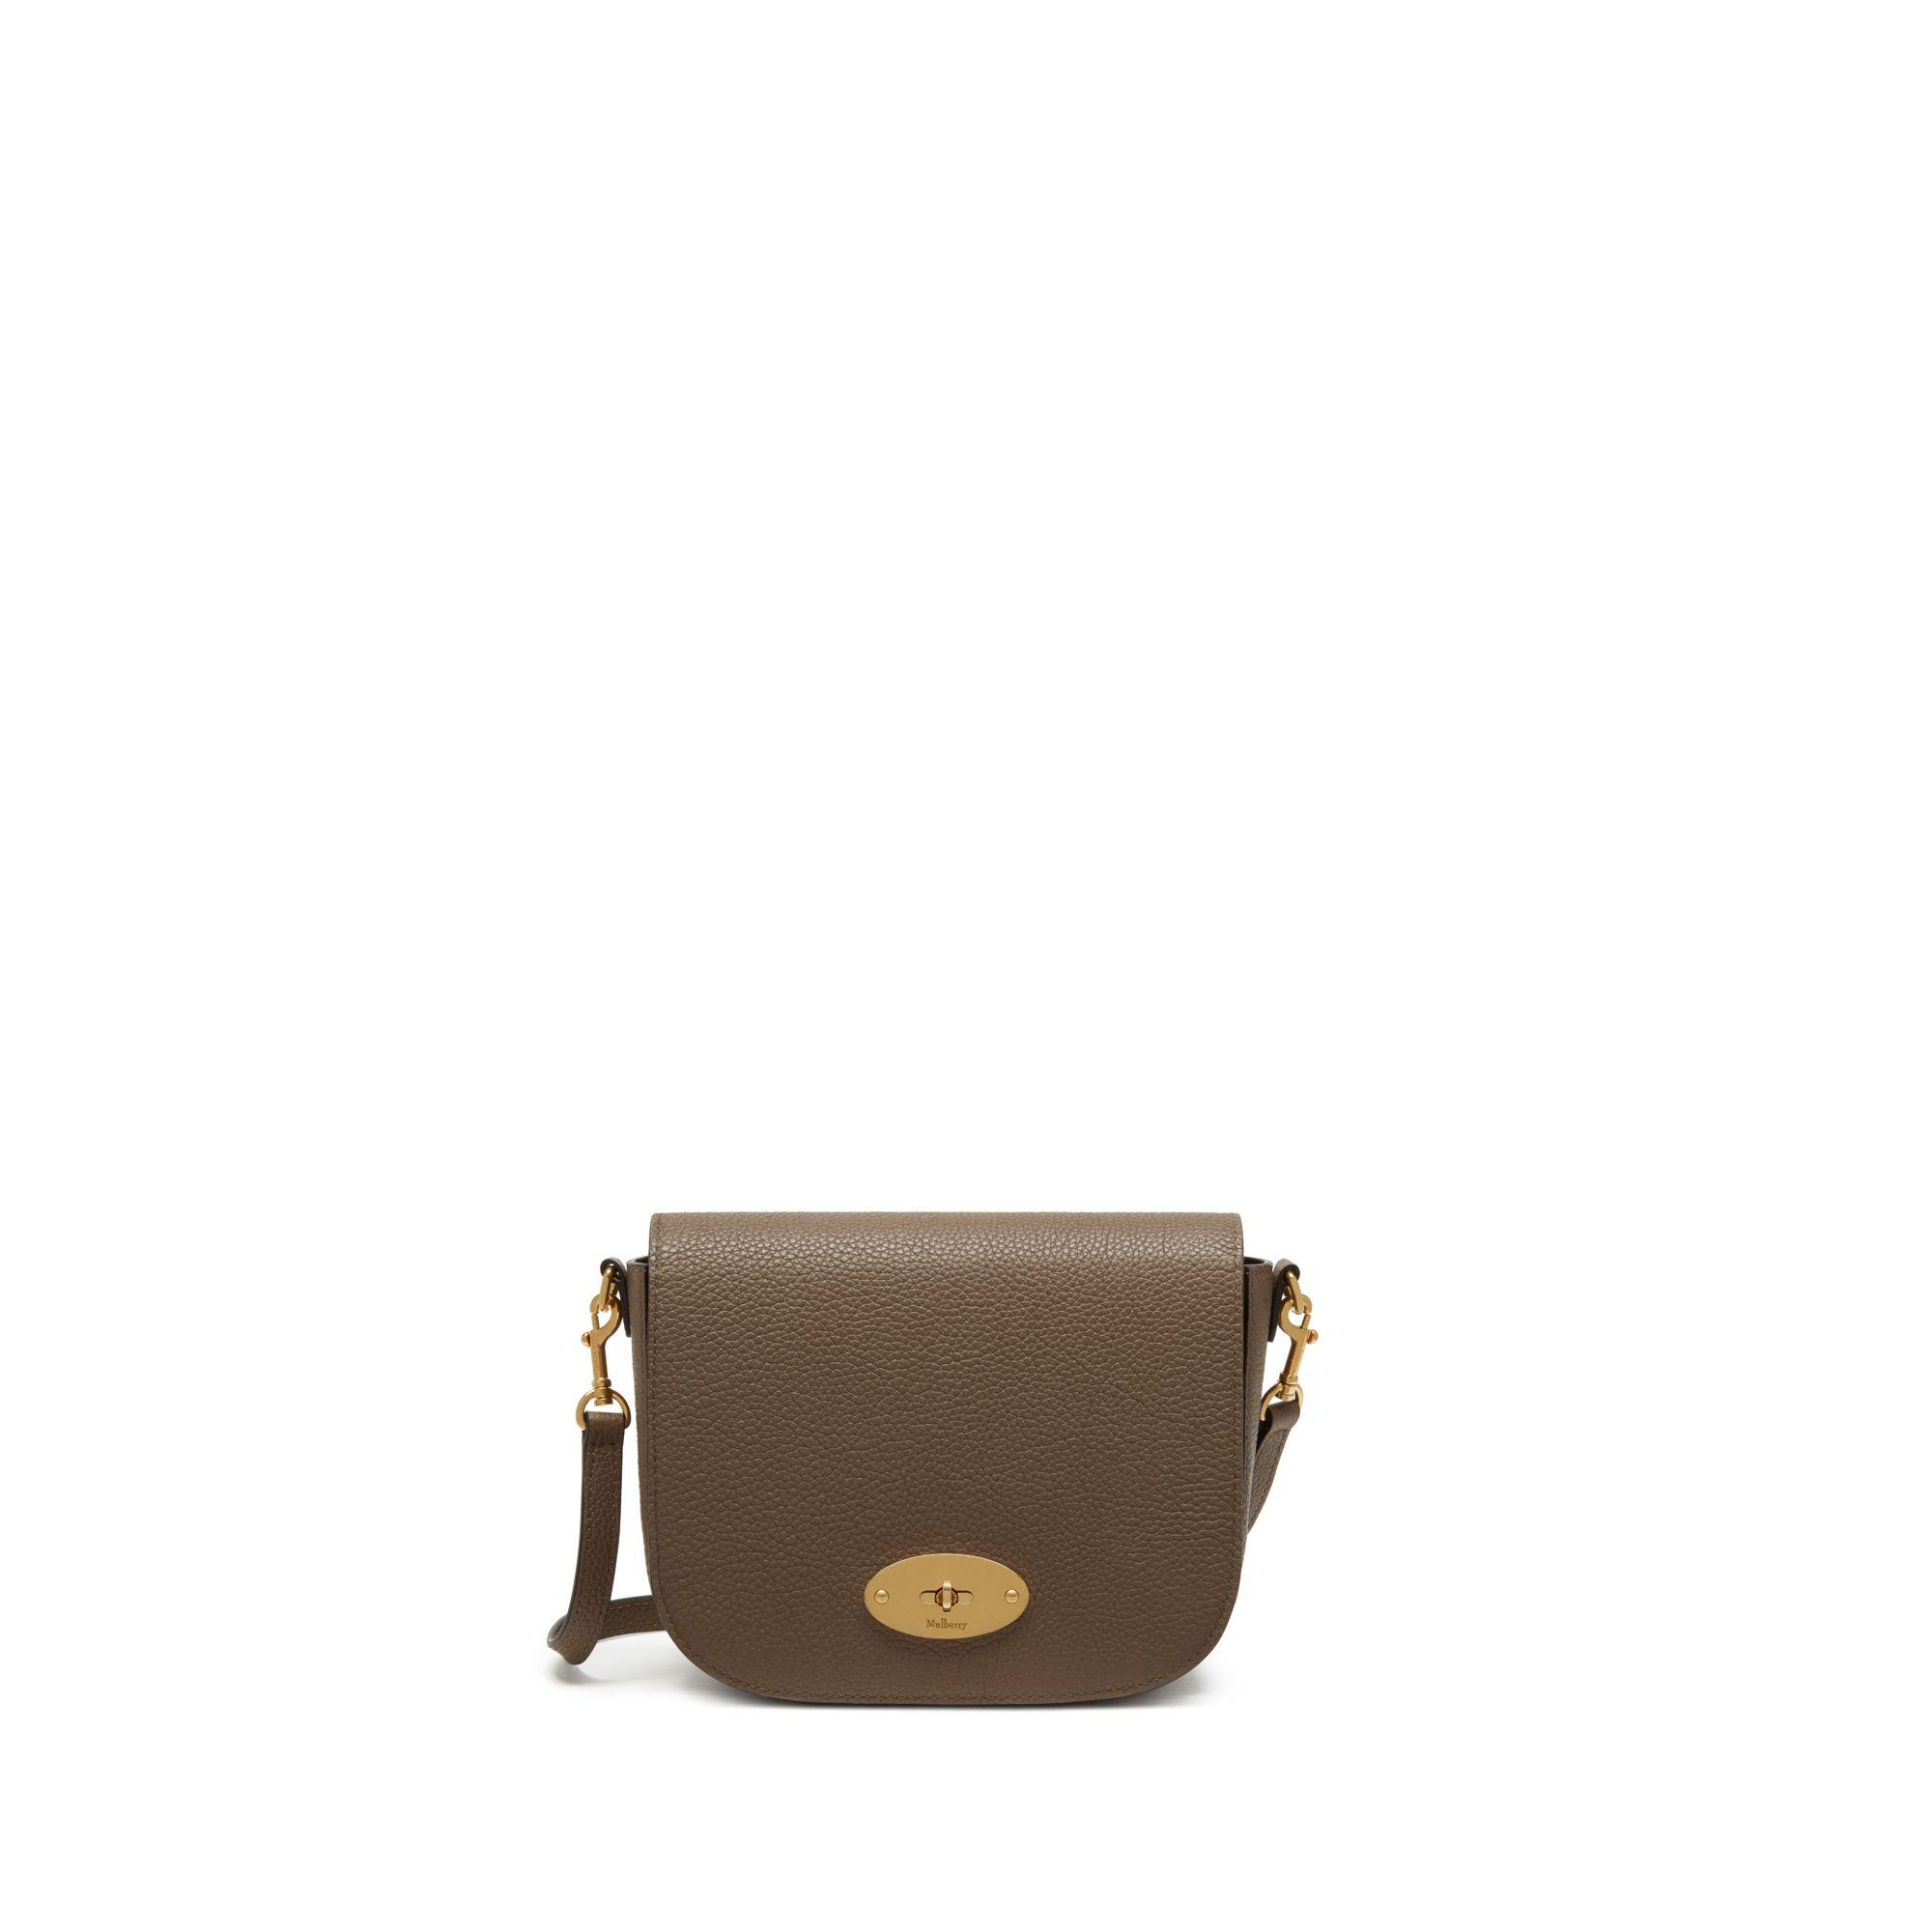 096cbaae9871 Mulberry - Brown Small Darley Satchel In Clay Small Classic Grain - Lyst.  View fullscreen